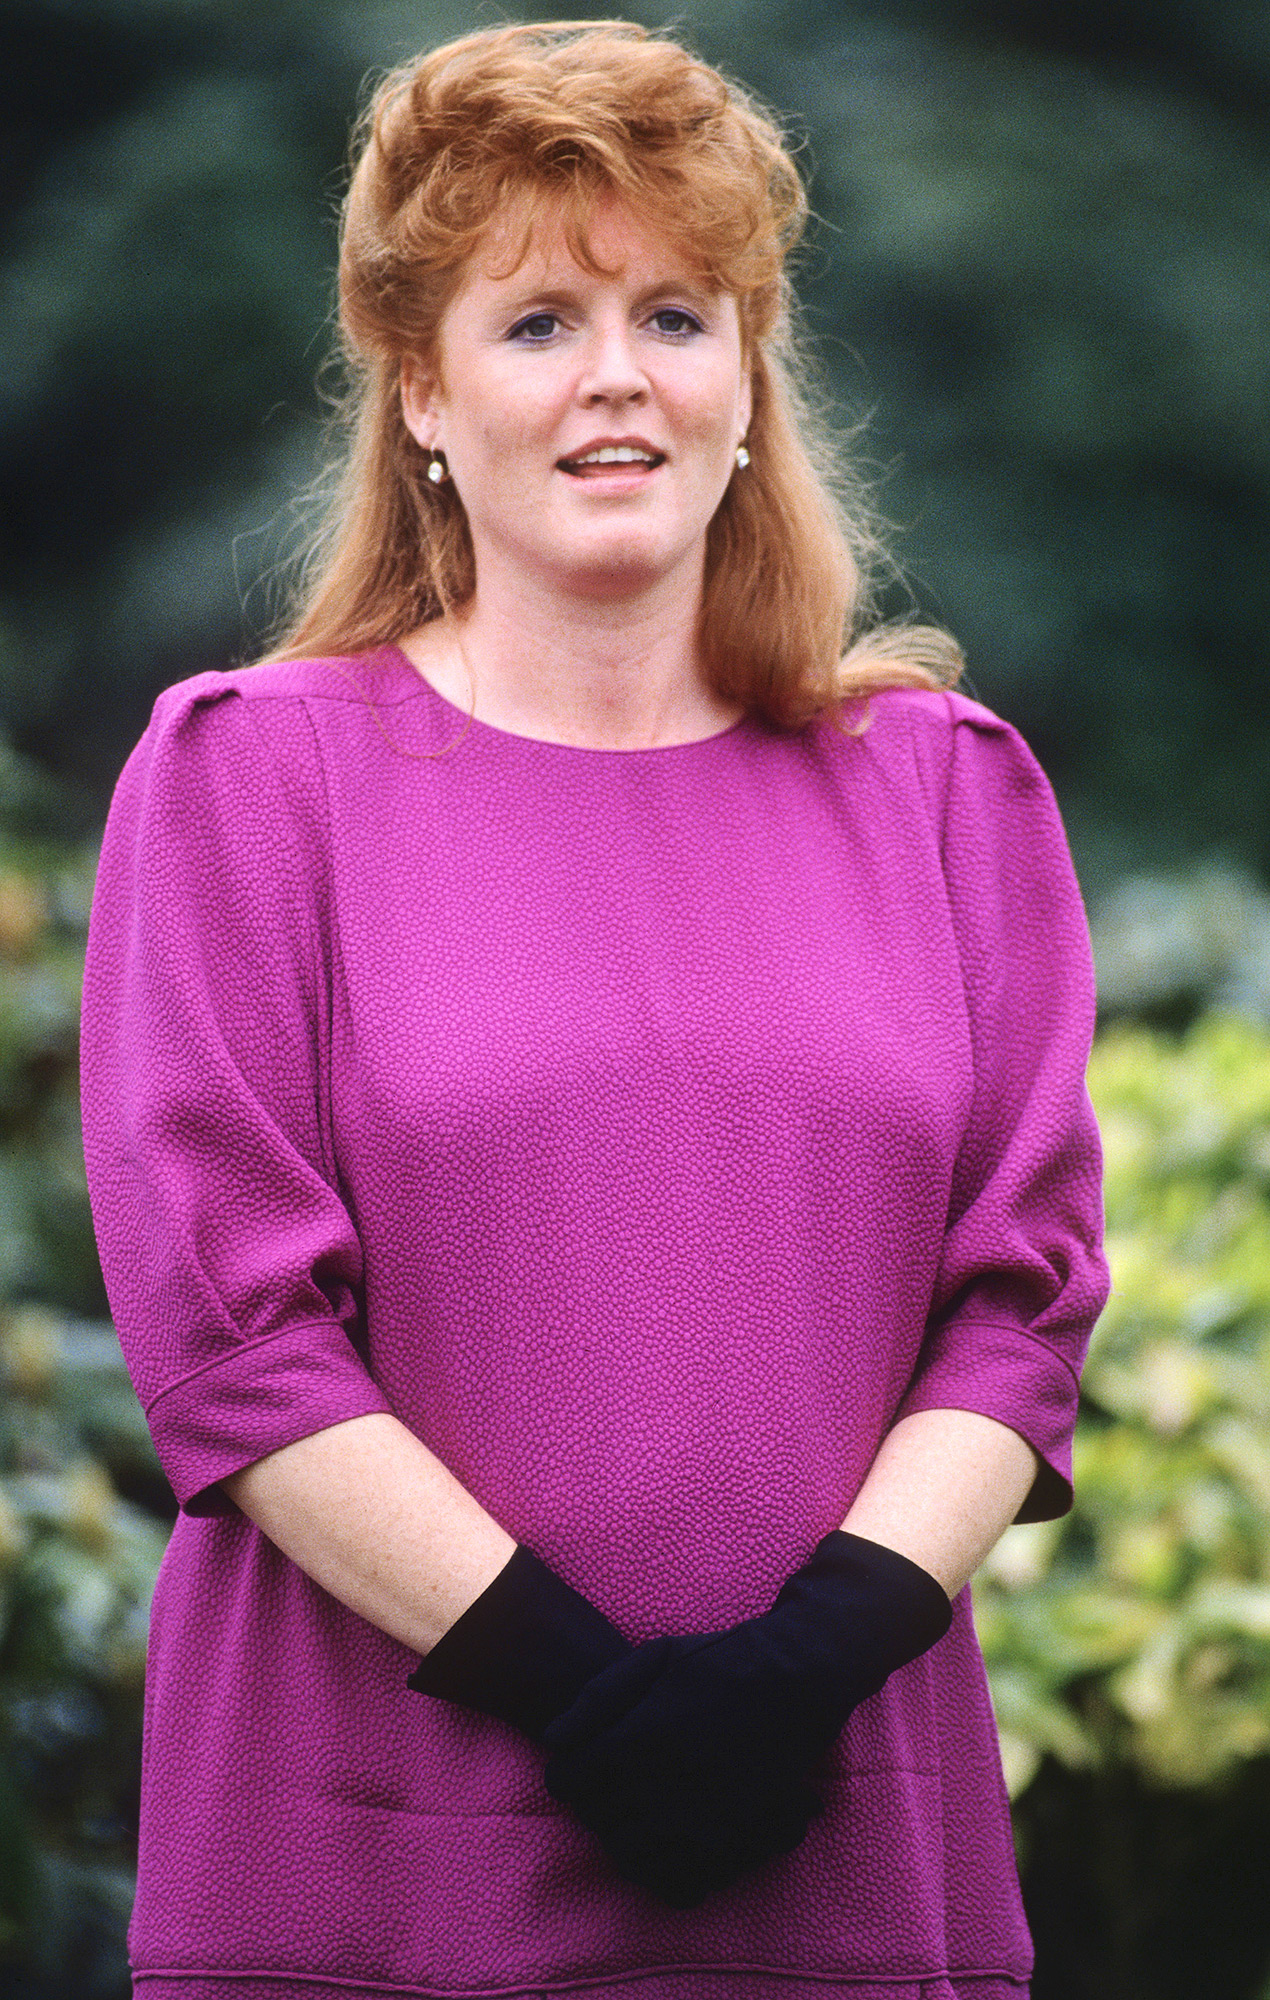 Sarah, Duchess of York (pregnant with Princess Beatrice)